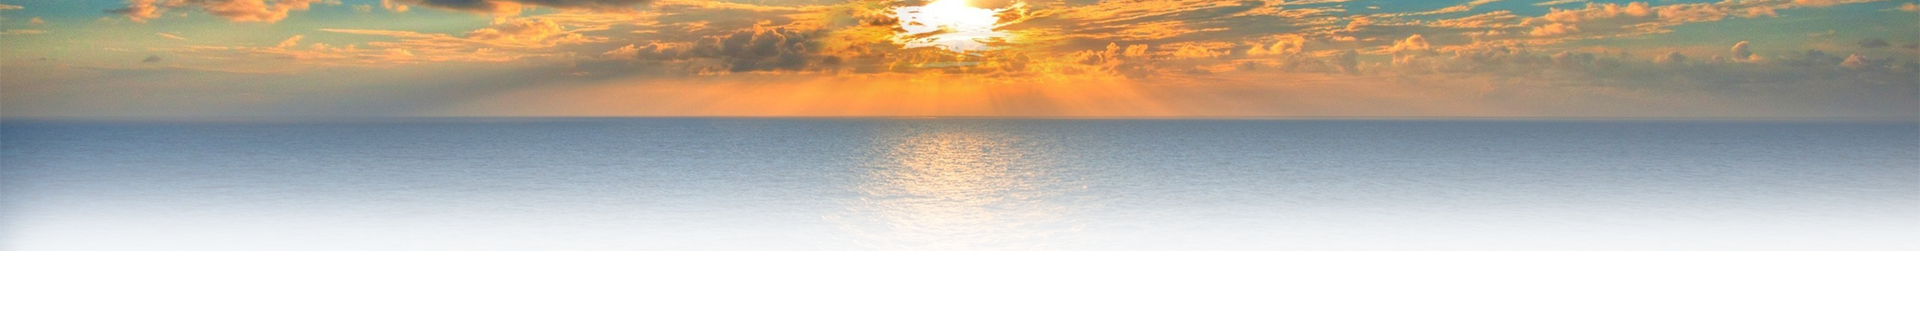 sunrise-sea_new_new_new_new_new